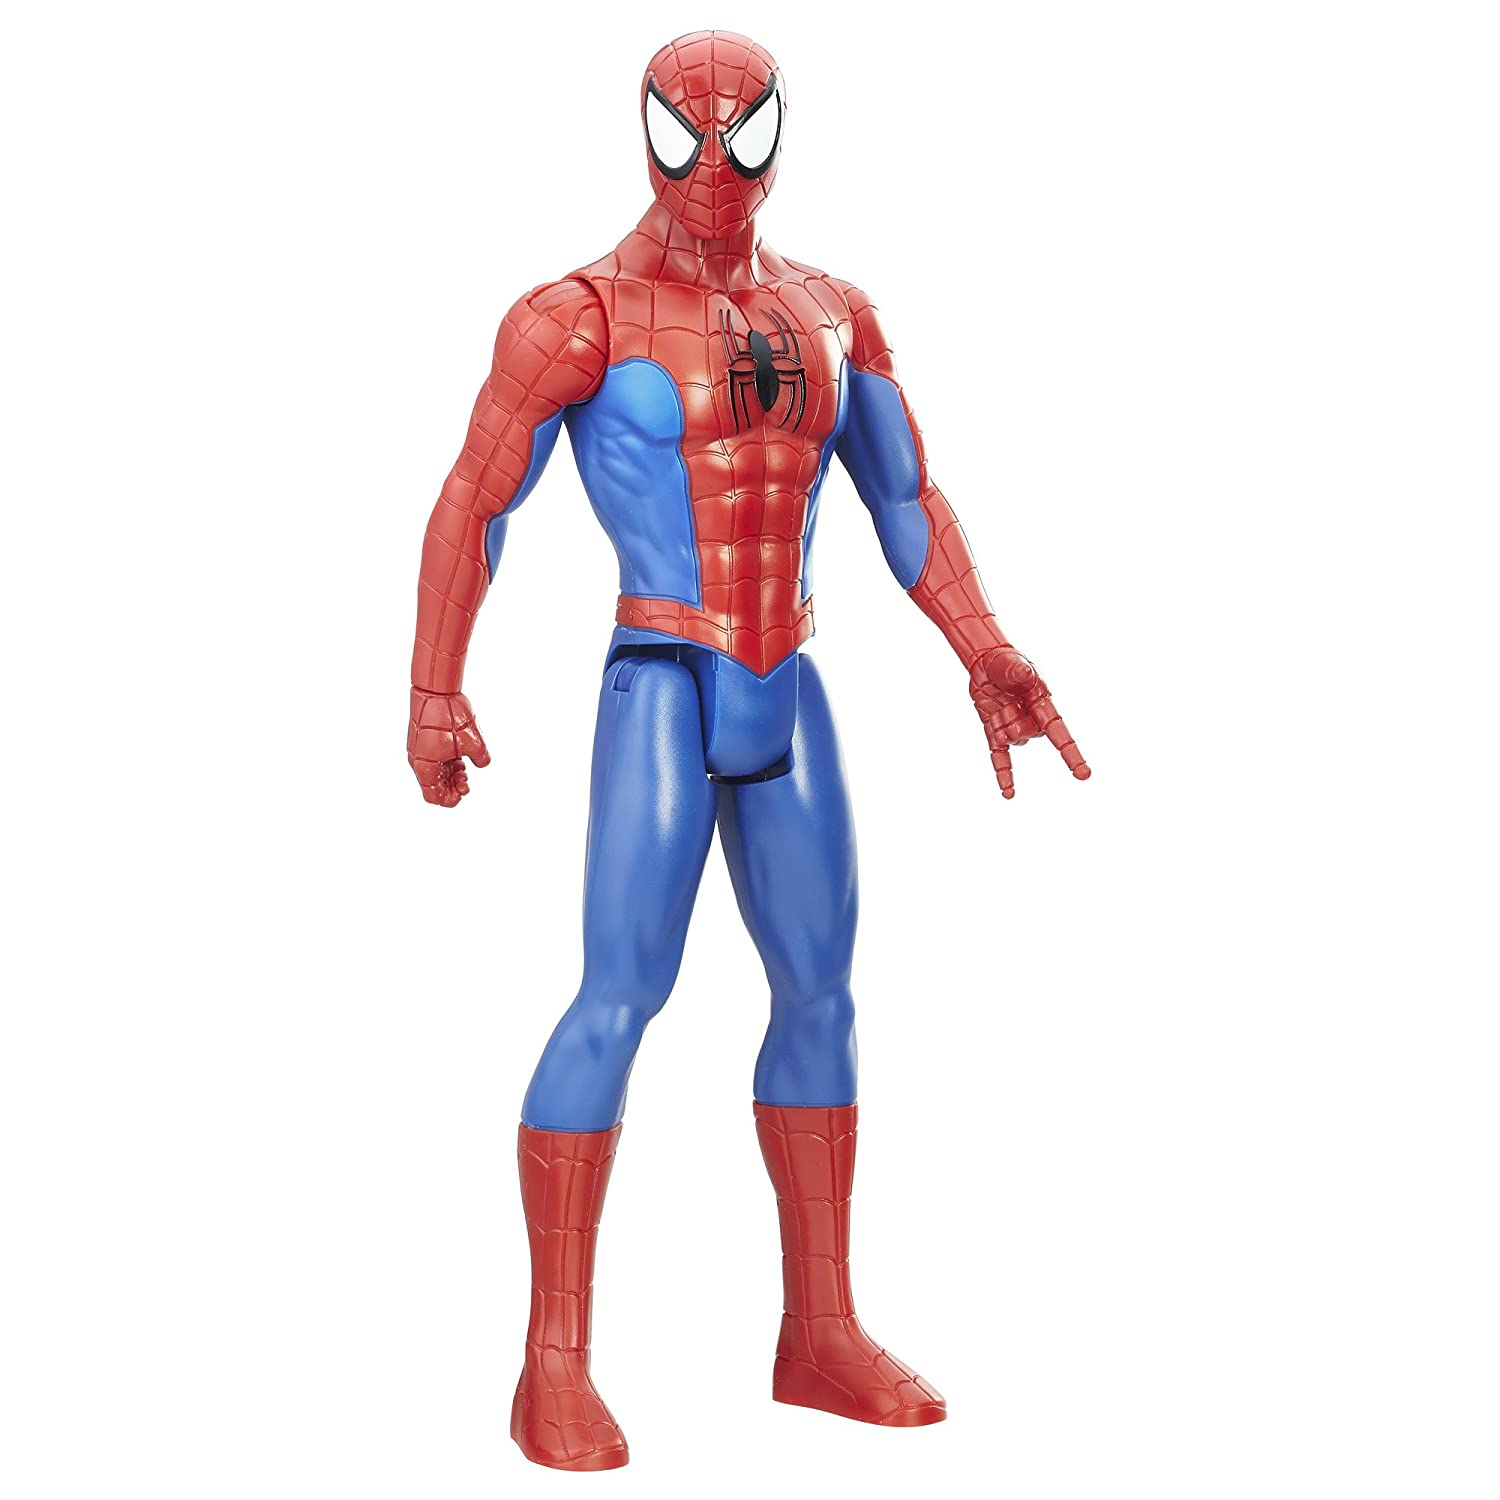 Big Spider-Man Titan Hero Series Action Figure Toy Marvel ...